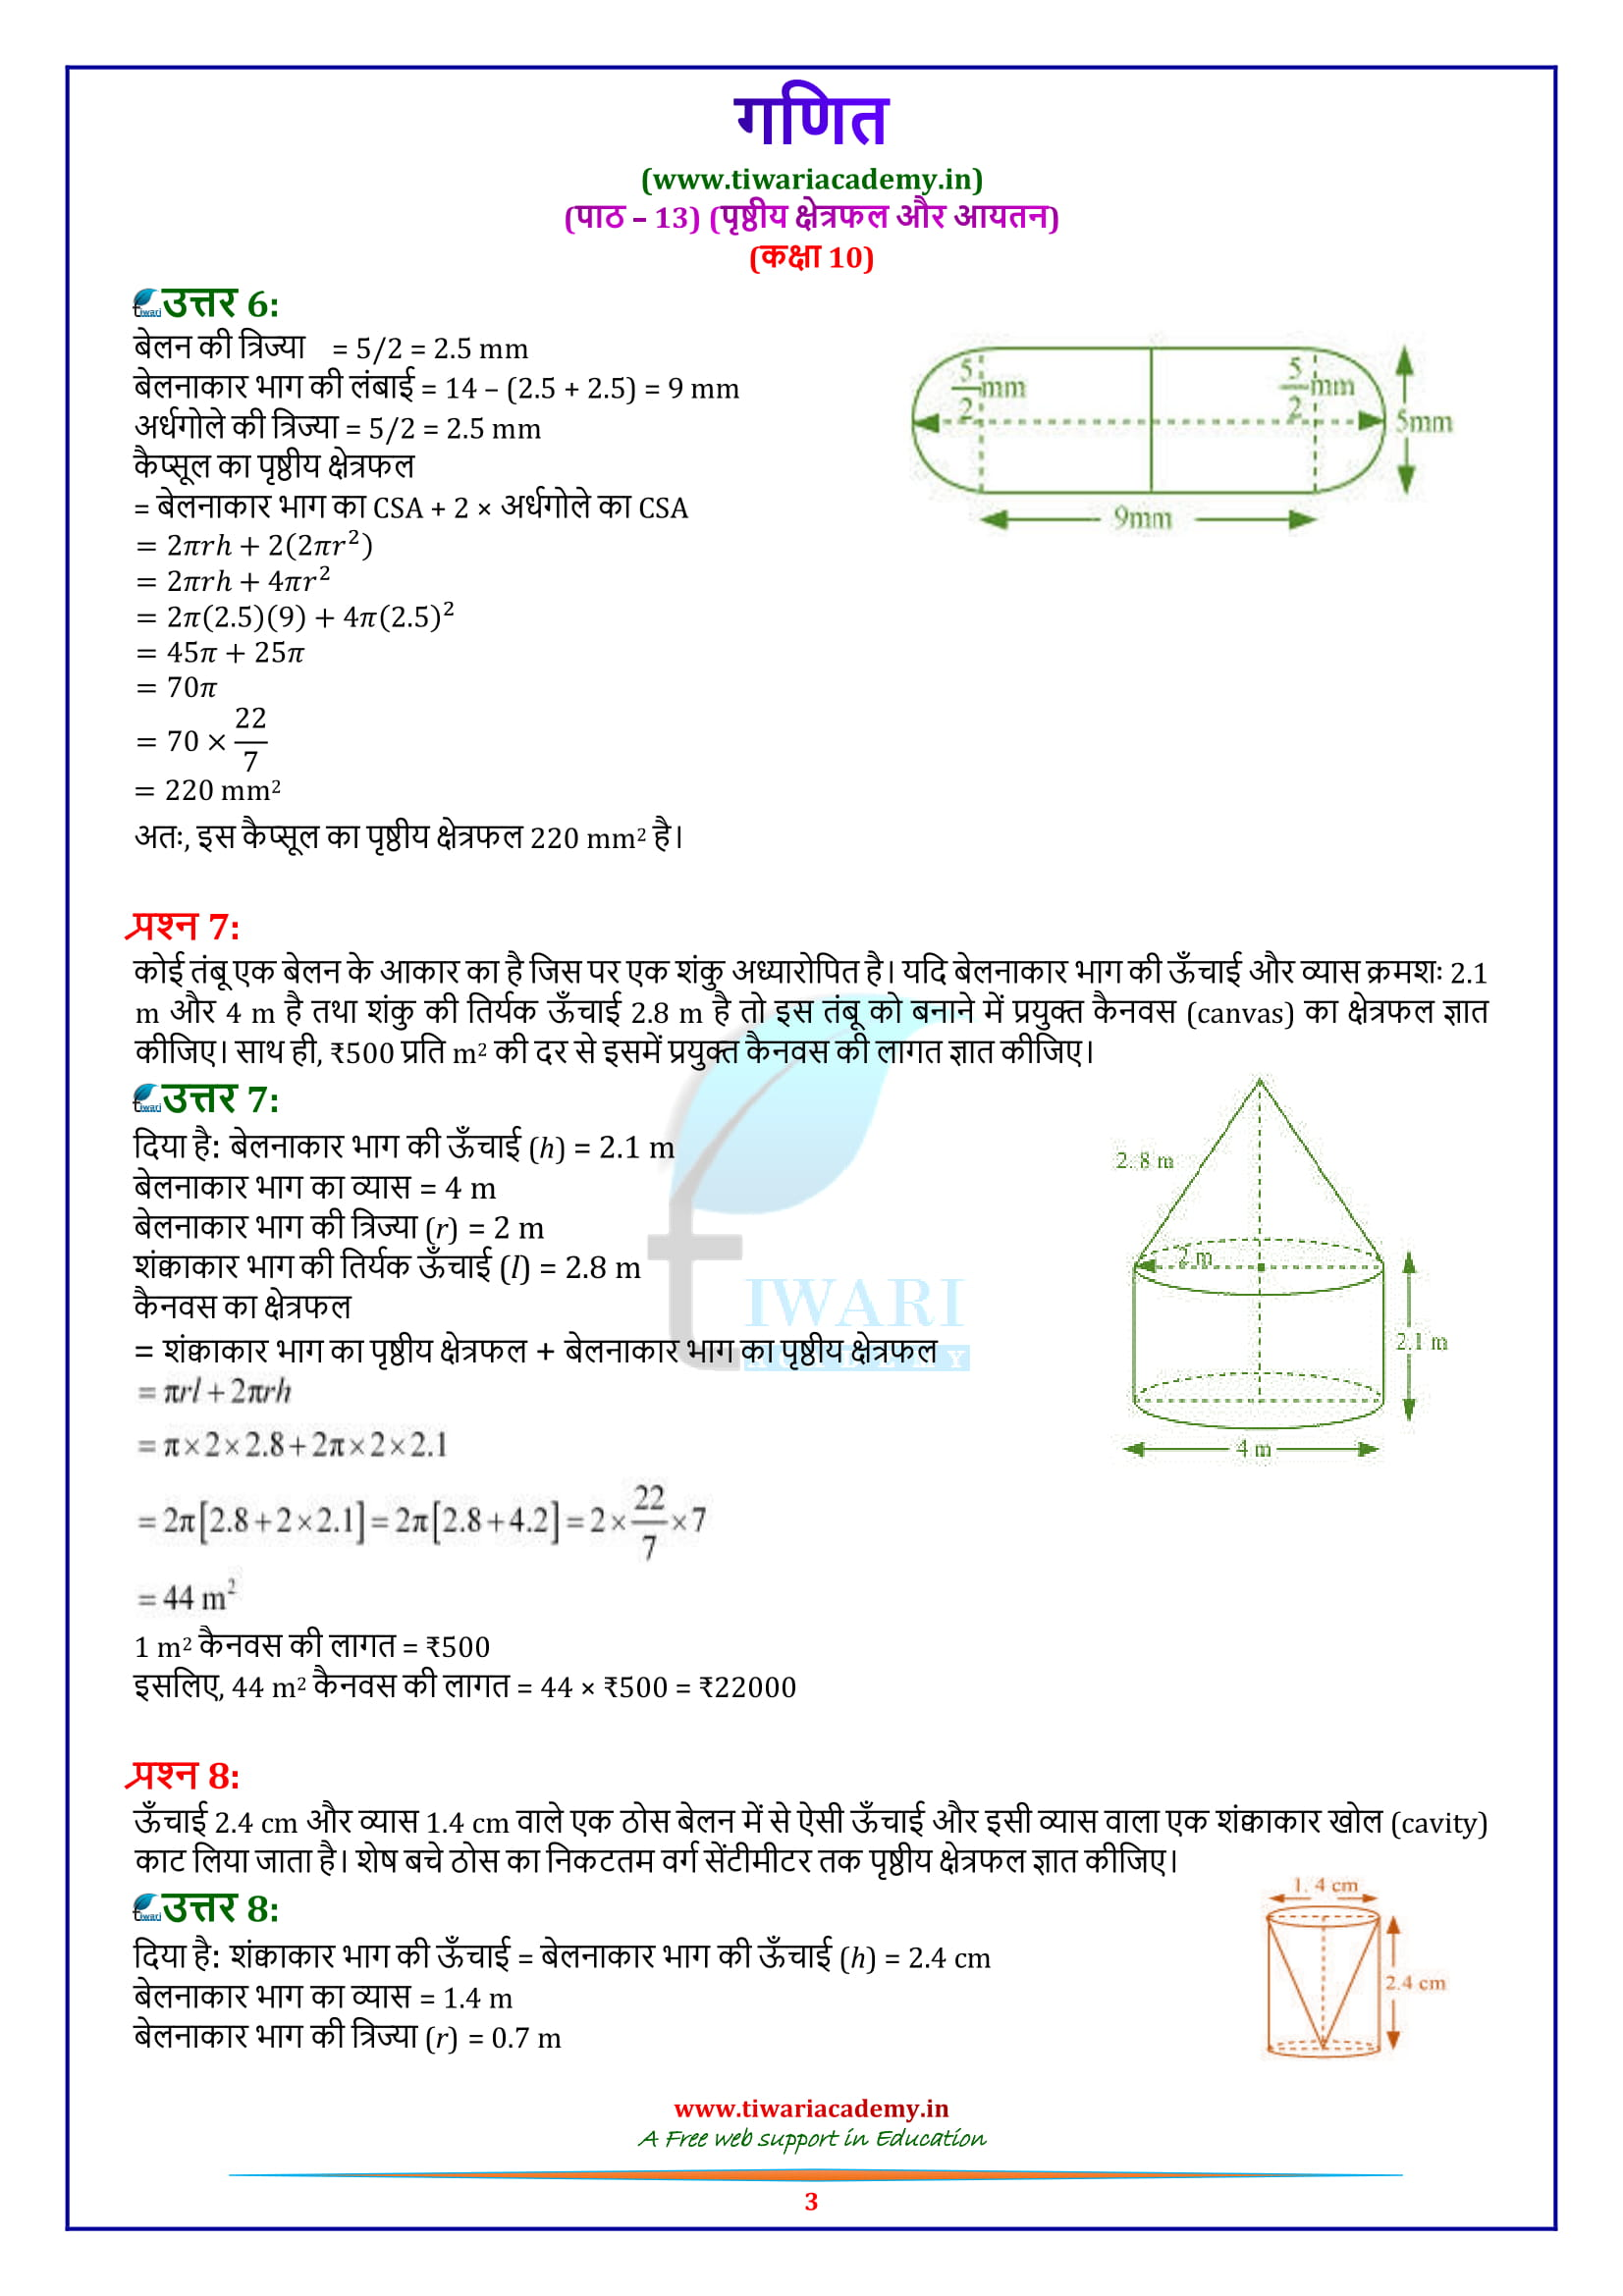 Class 10 Maths Exercise 13.1 Solutions hindi me all questions